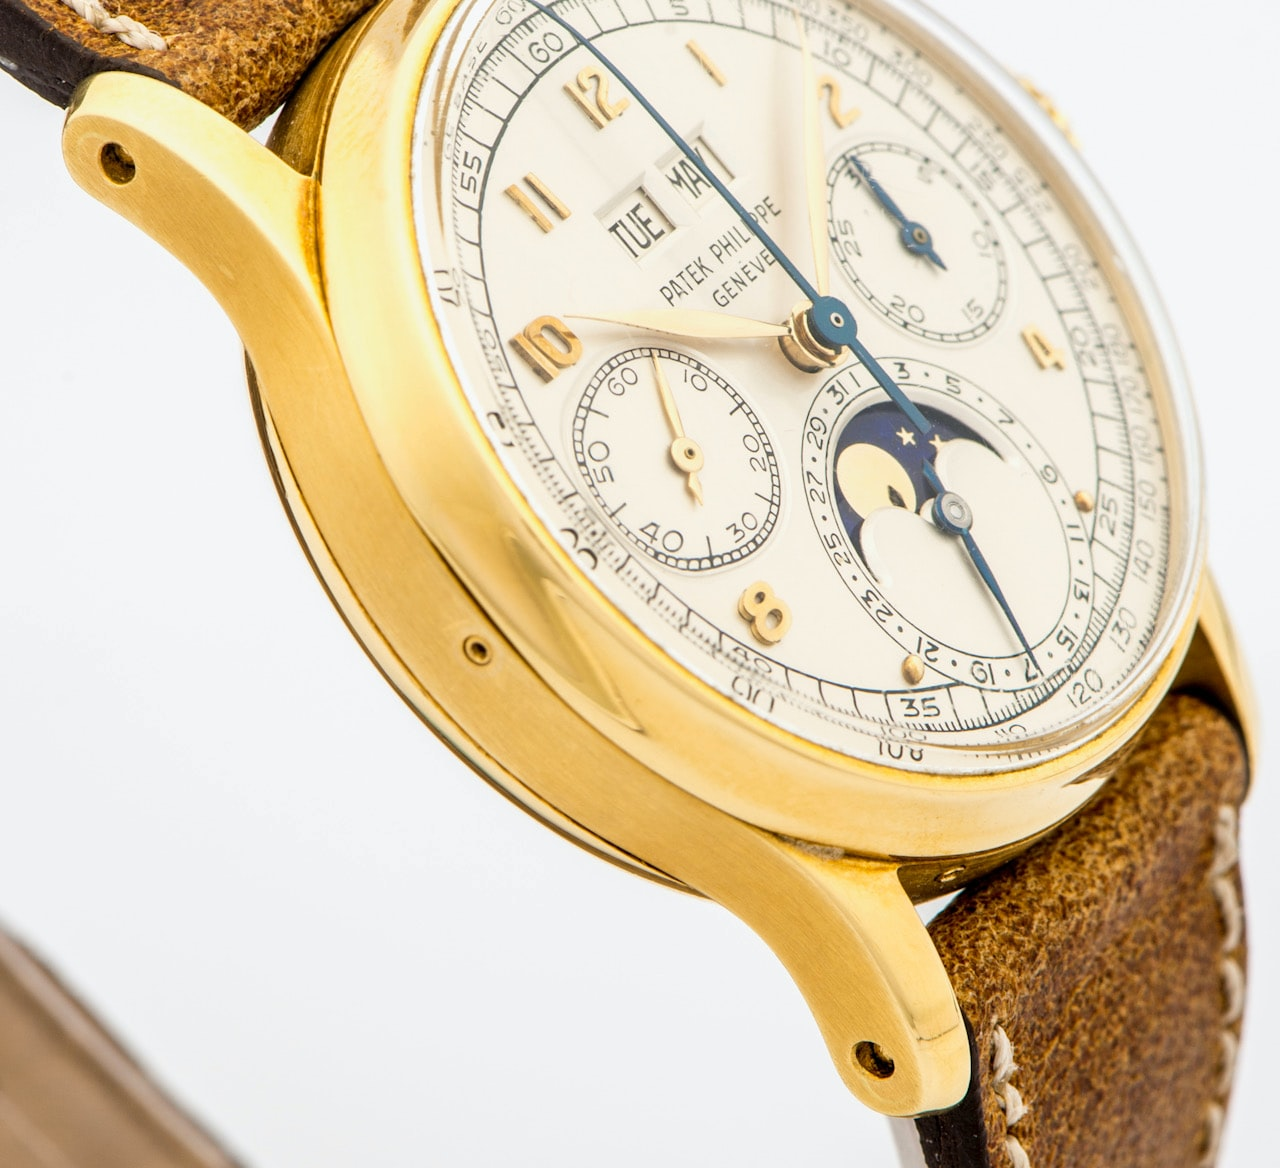 Watch Collector PSA: A Very Rare Patek Philippe 1518 In Yellow Gold Has Been Stolen (Please Share) IMG 4770